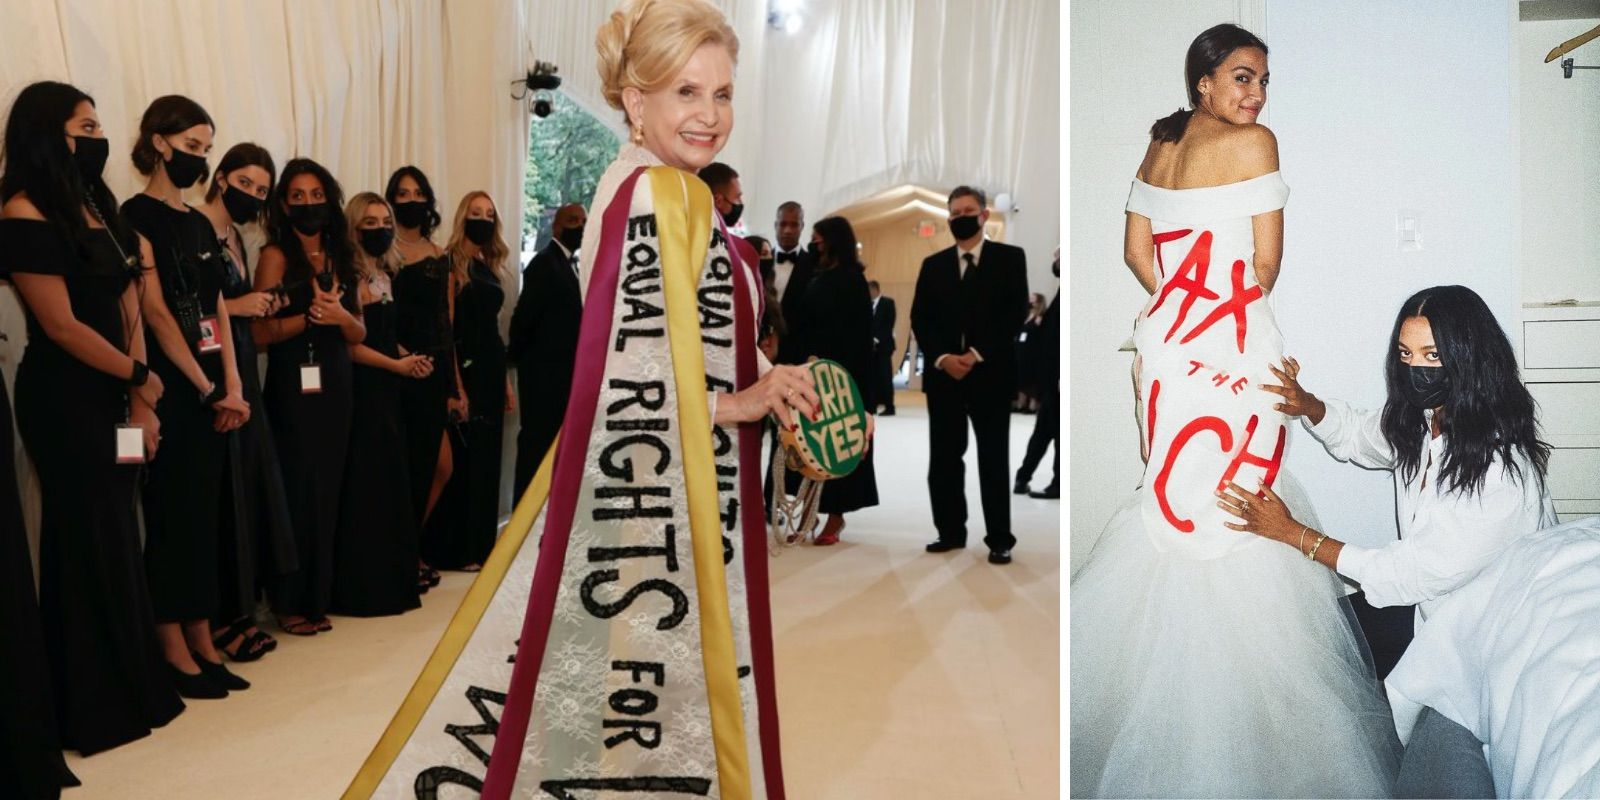 Rich elites go maskless, promote 'social justice,' while the servant class must wear masks at Met Gala